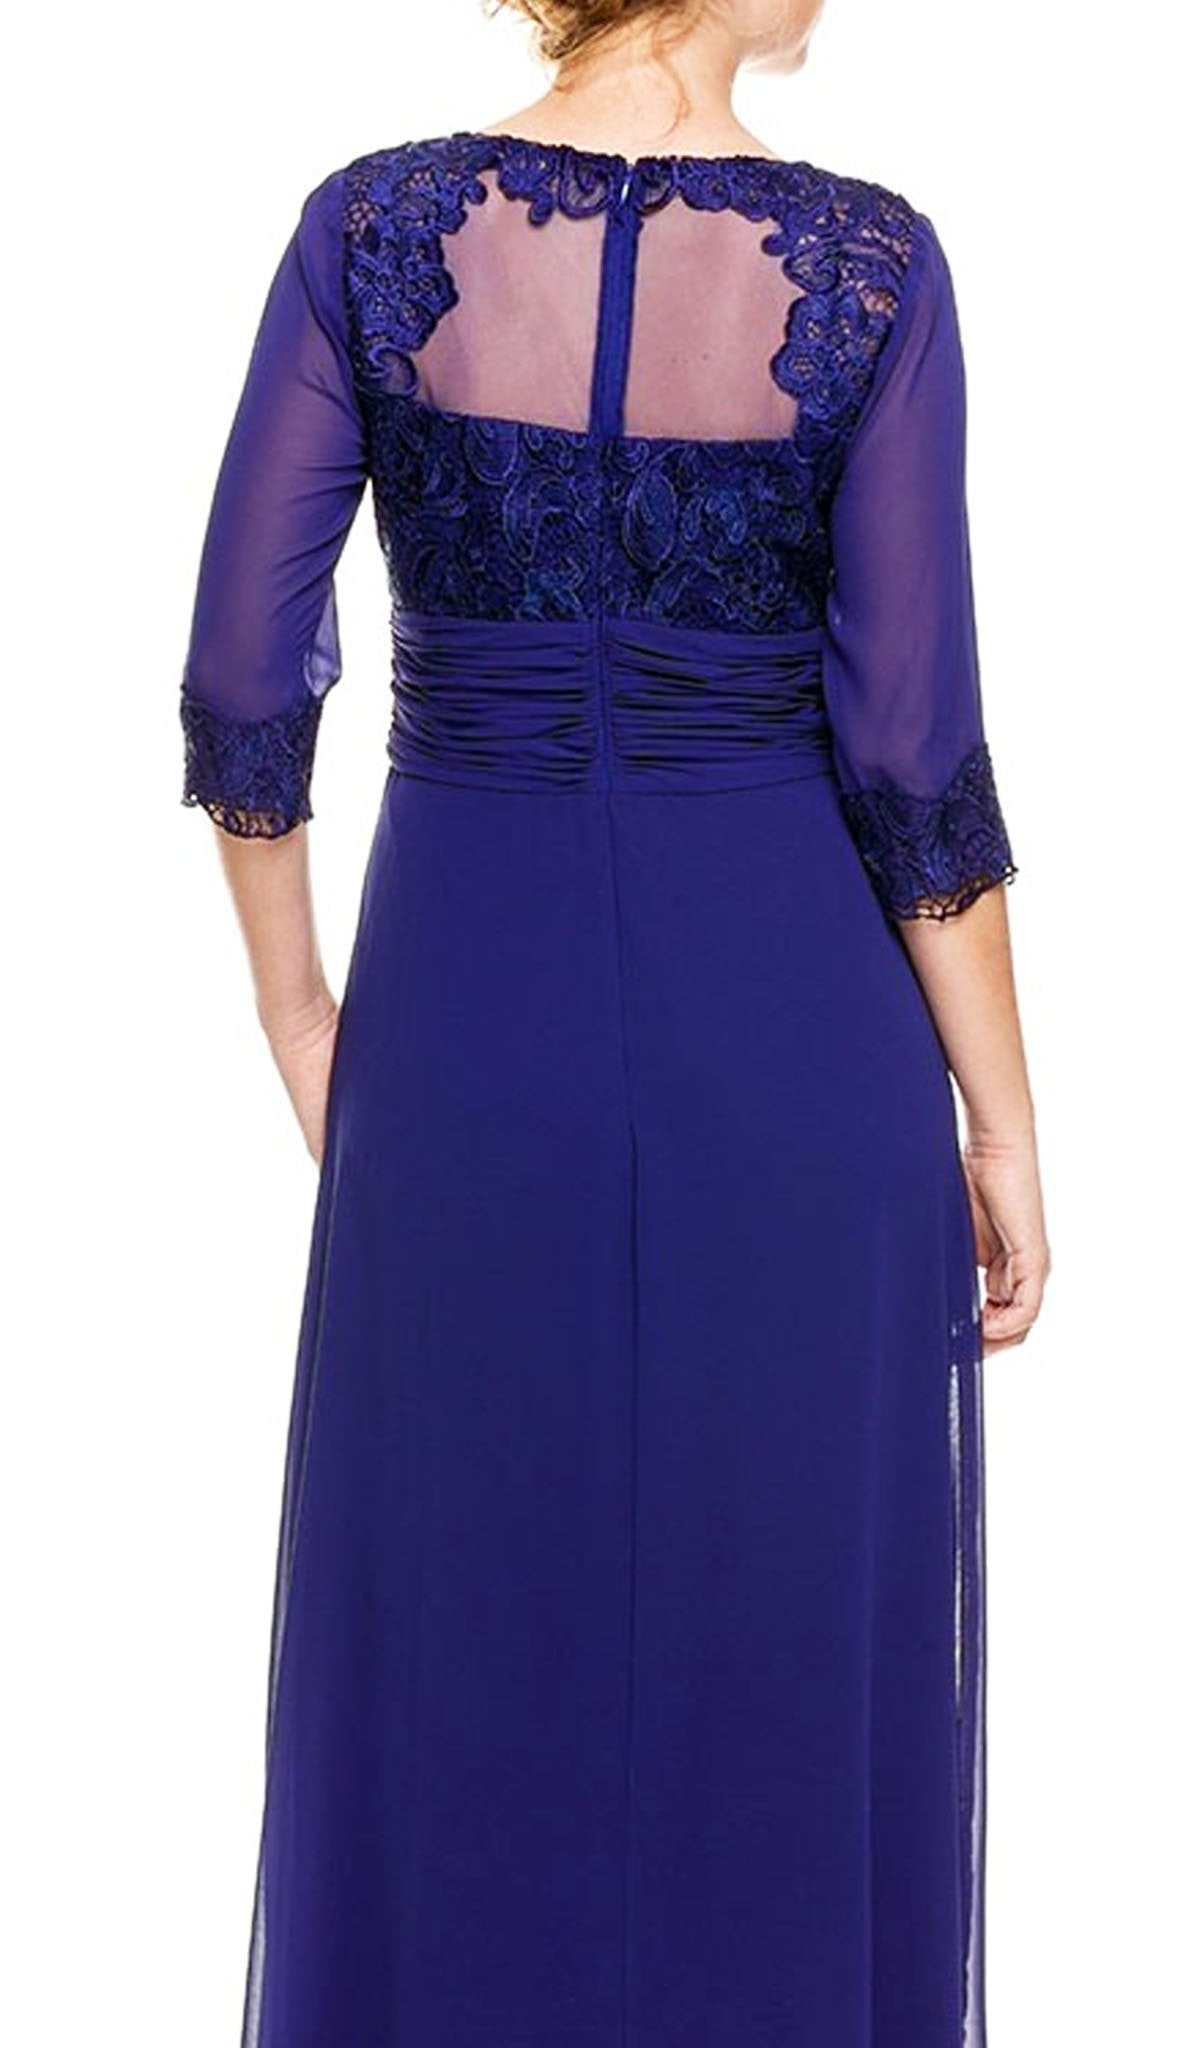 Nox Anabel - Quarter Length Sleeve Long Formal Dress 5101SC